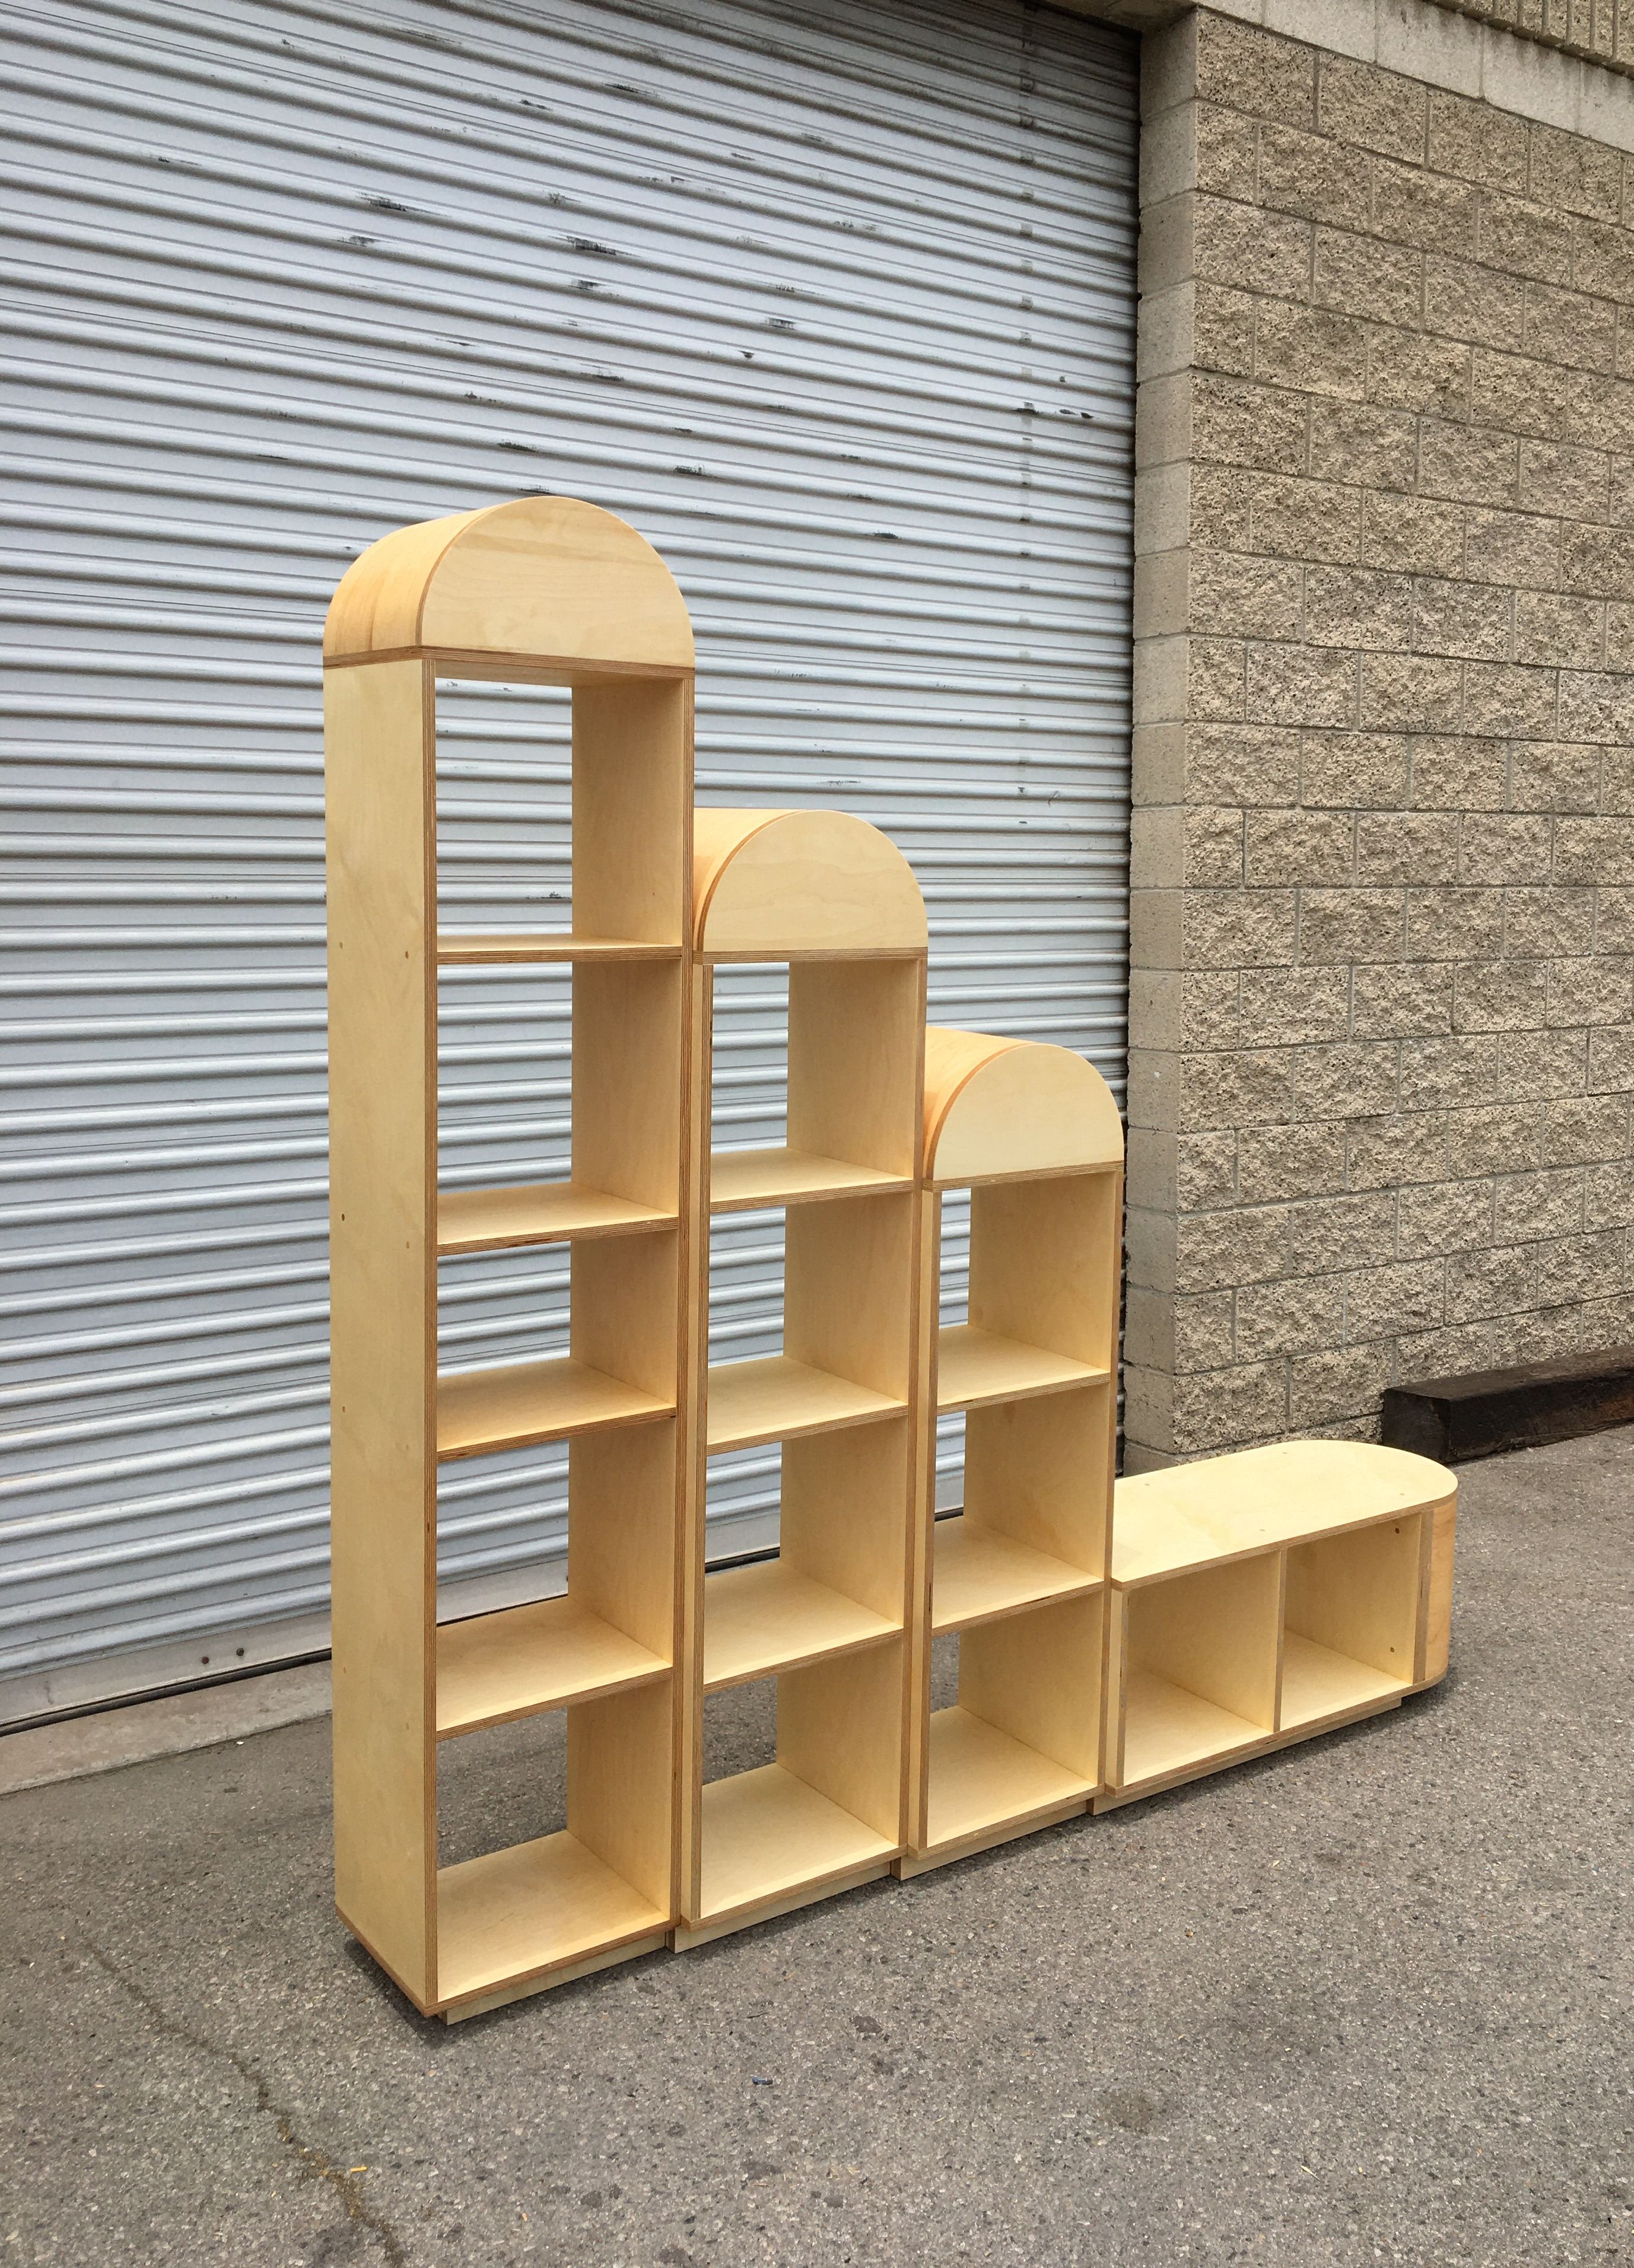 Tiered Tower Bookshelf product image 6